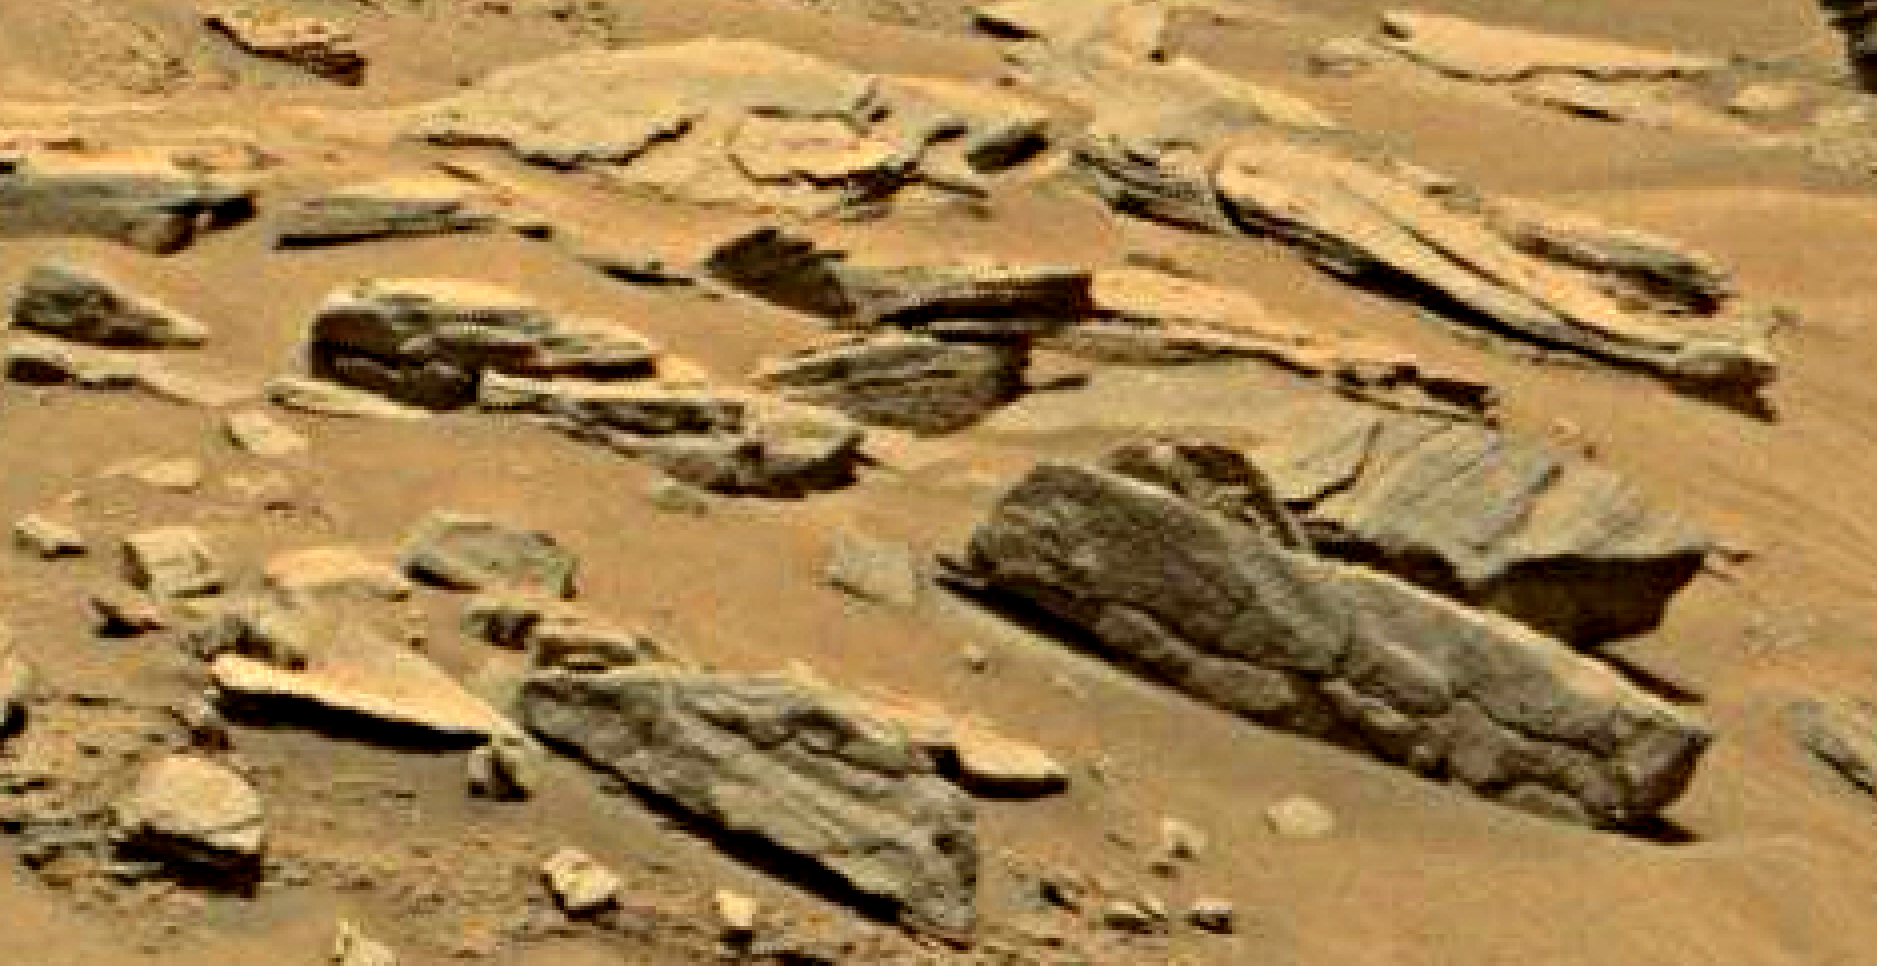 mars sol 1353 anomaly-artifacts 31 was life on mars